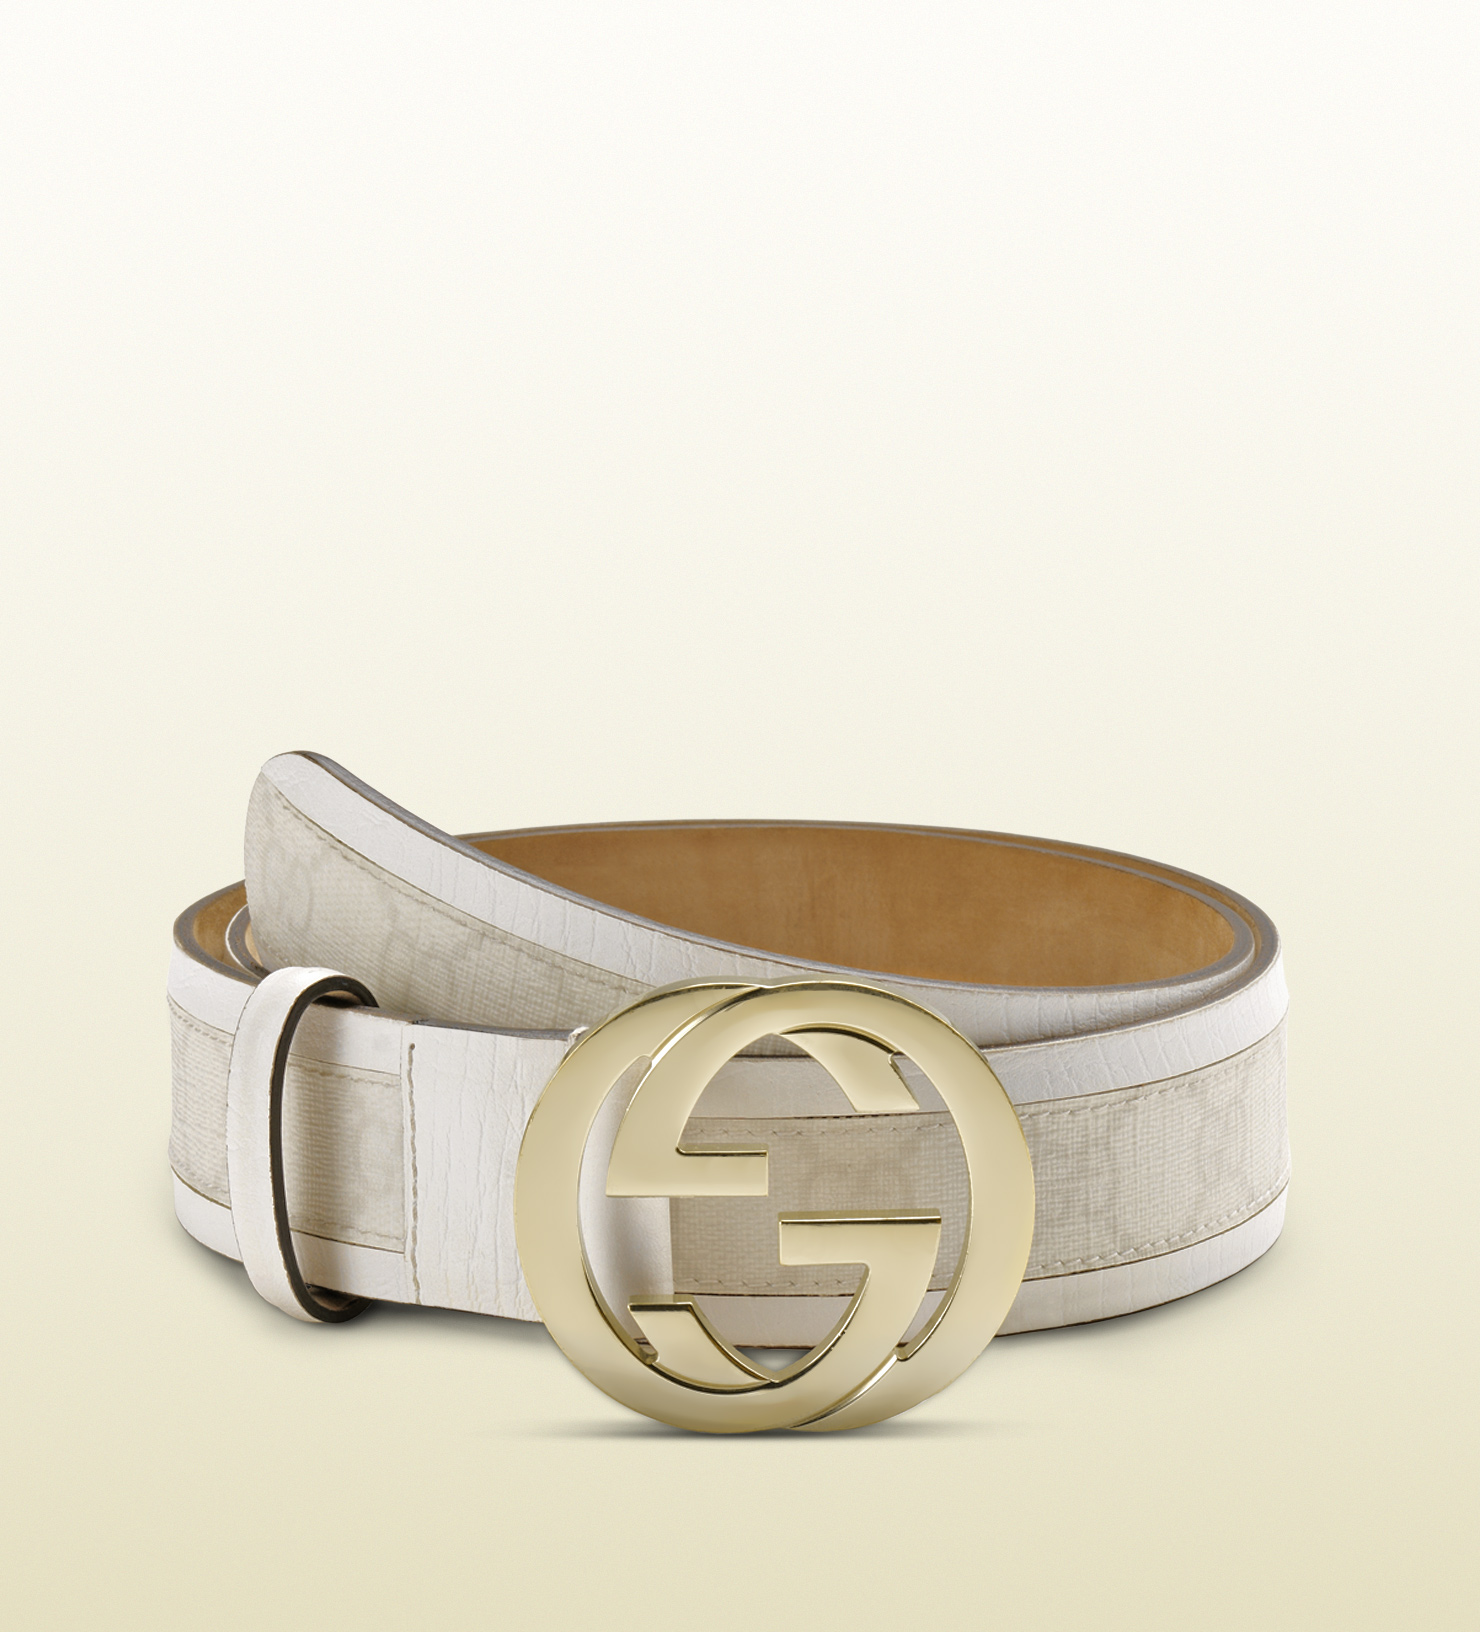 e7327b61276 Lyst - Gucci Gg Plus Belt With Interlocking G Buckle in White